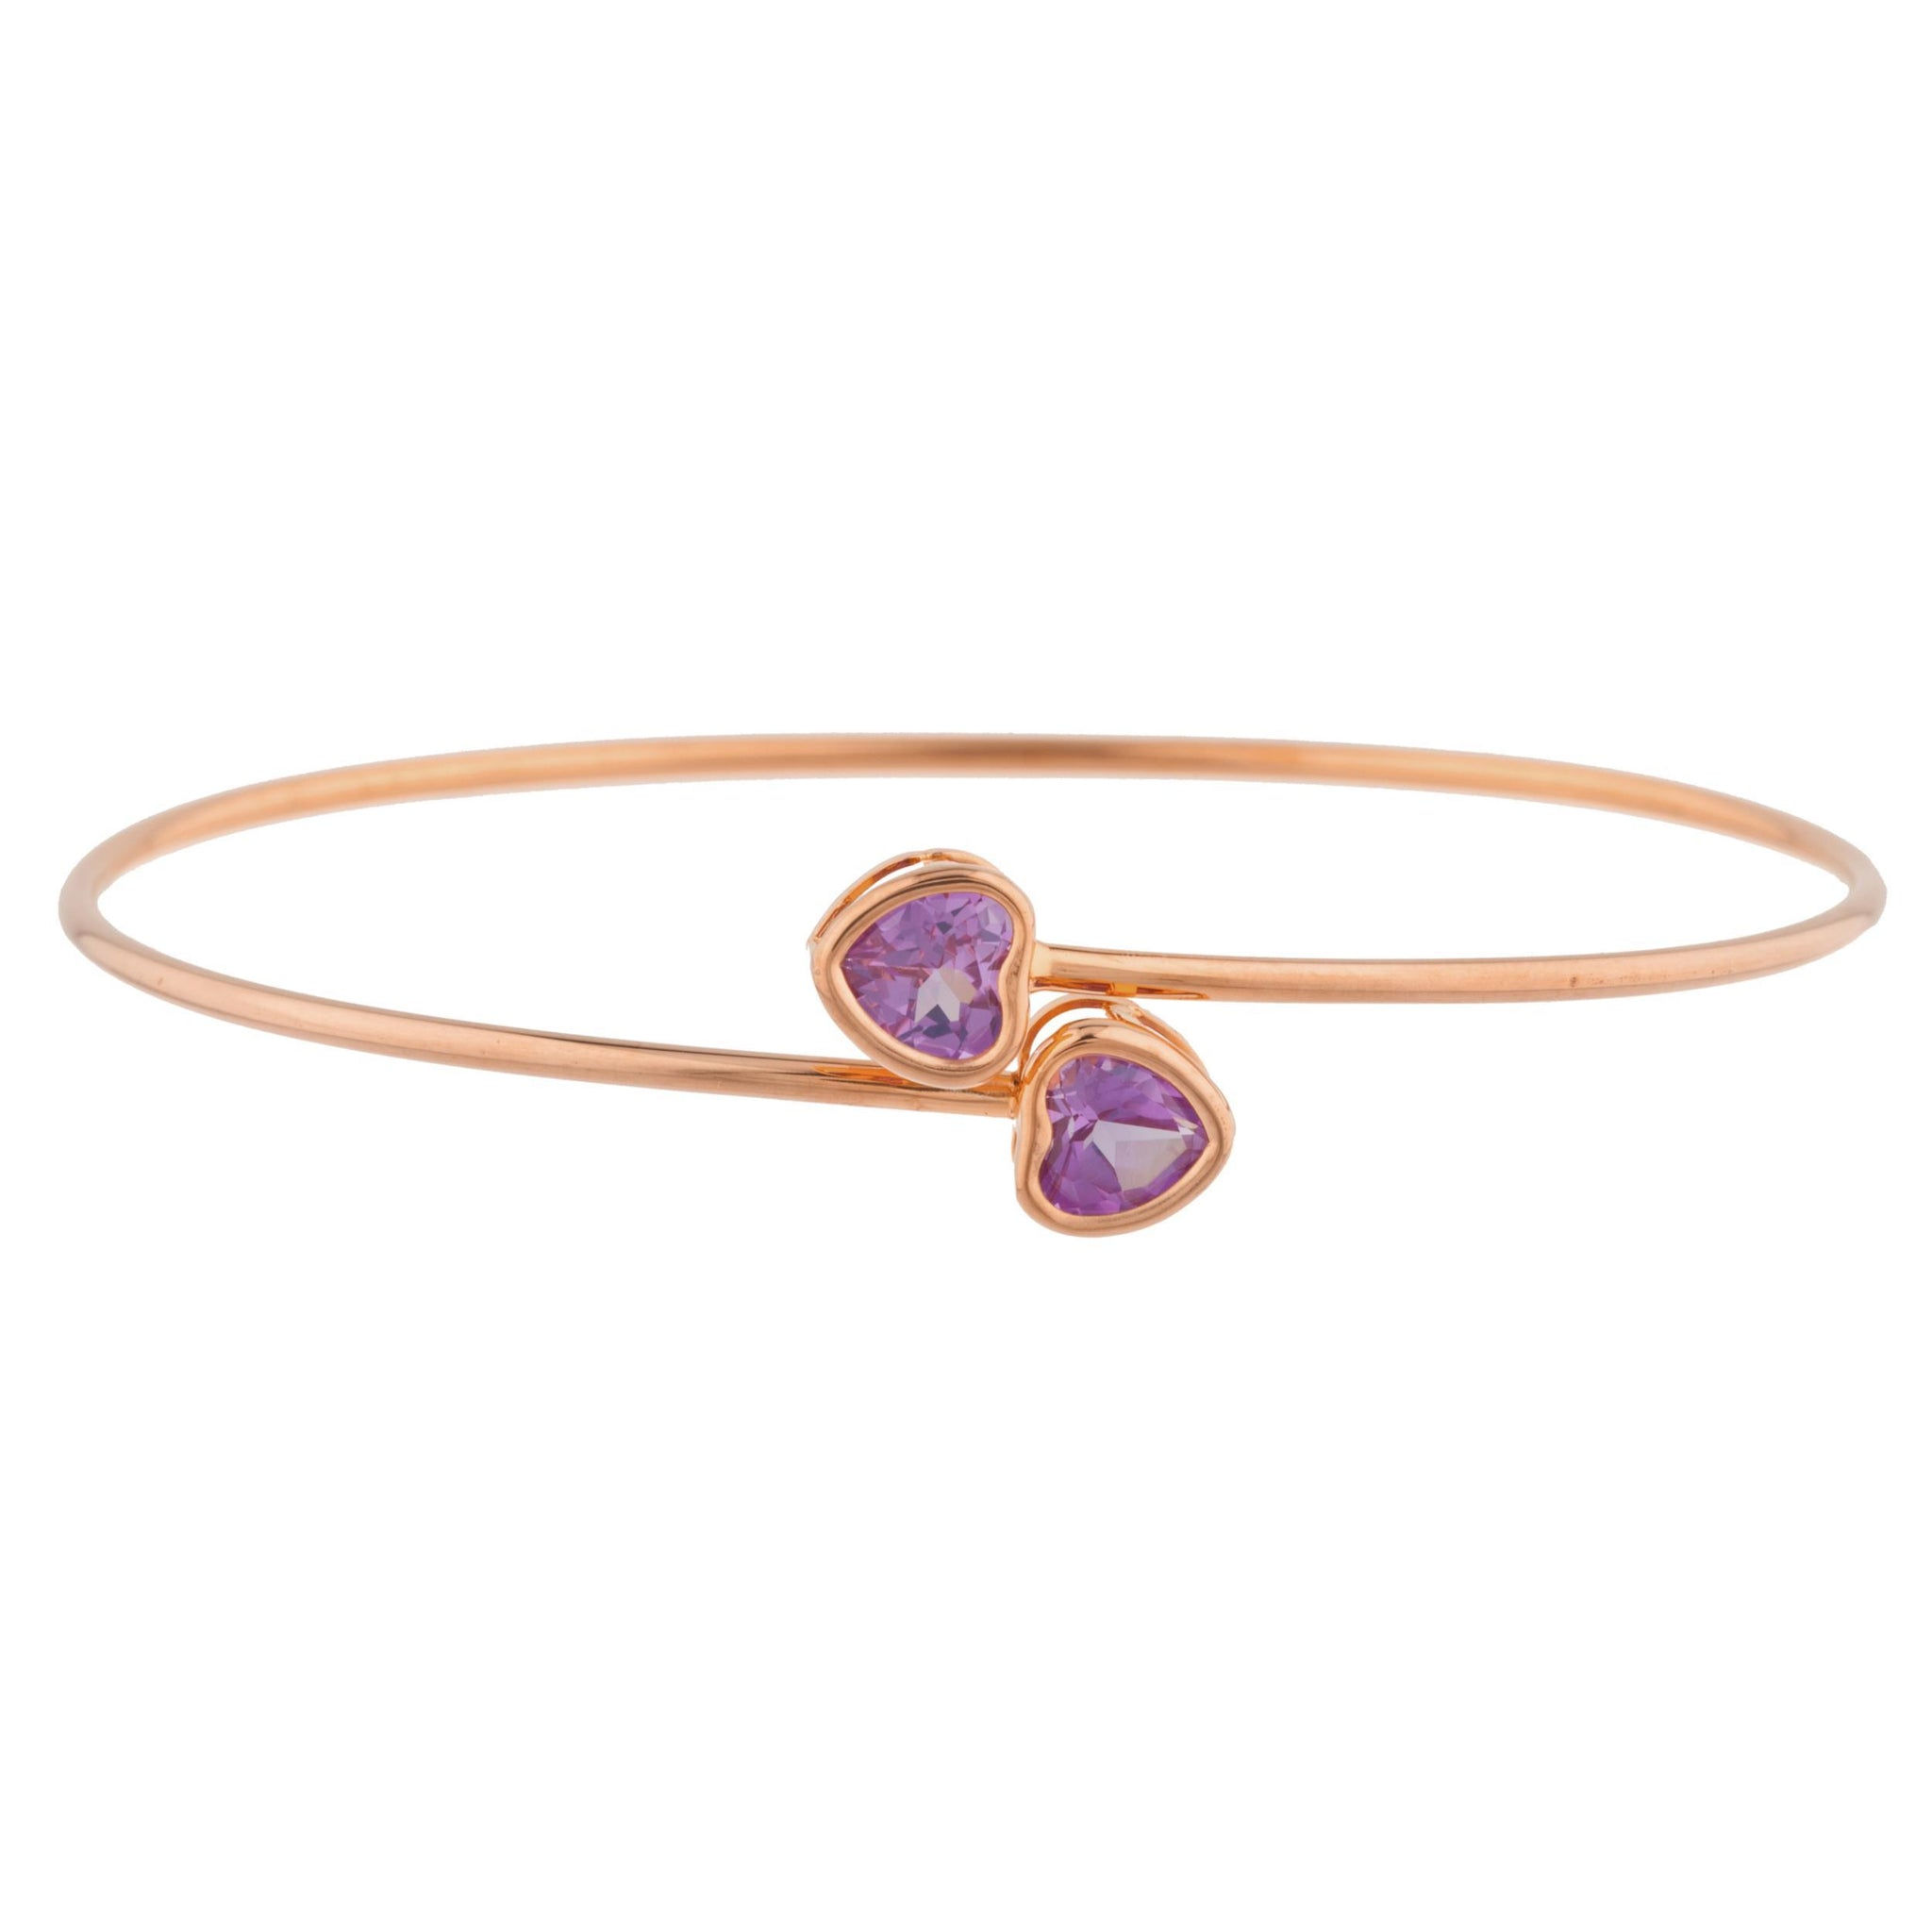 14Kt Rose Gold Plated Alexandrite Heart Bezel Bangle Bracelet